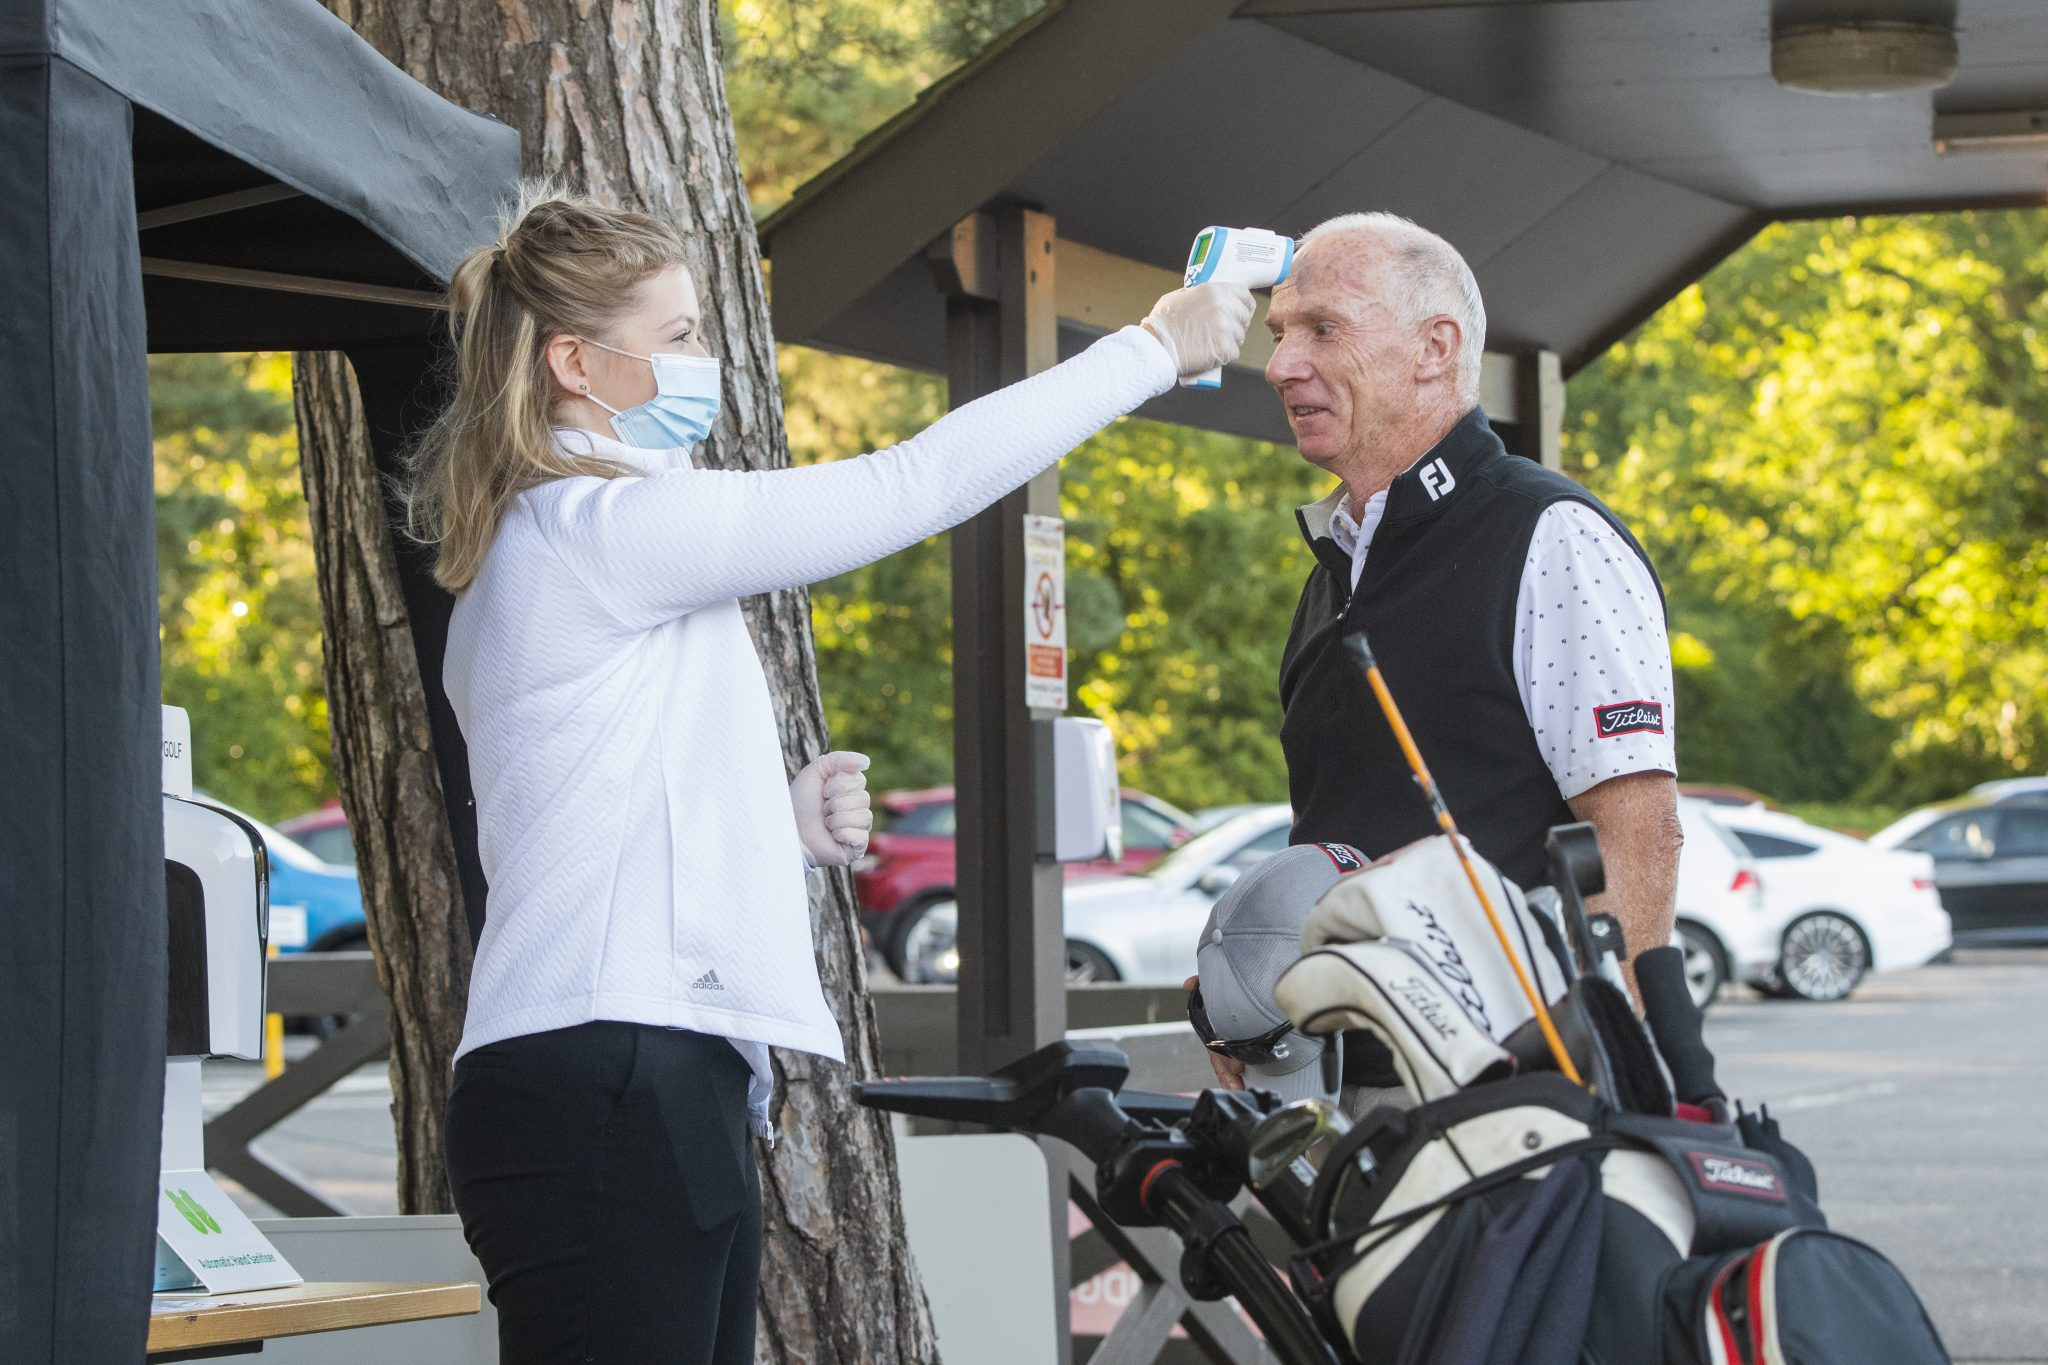 An open letter to the PM: Golf can safely help in first phase of recovery plan